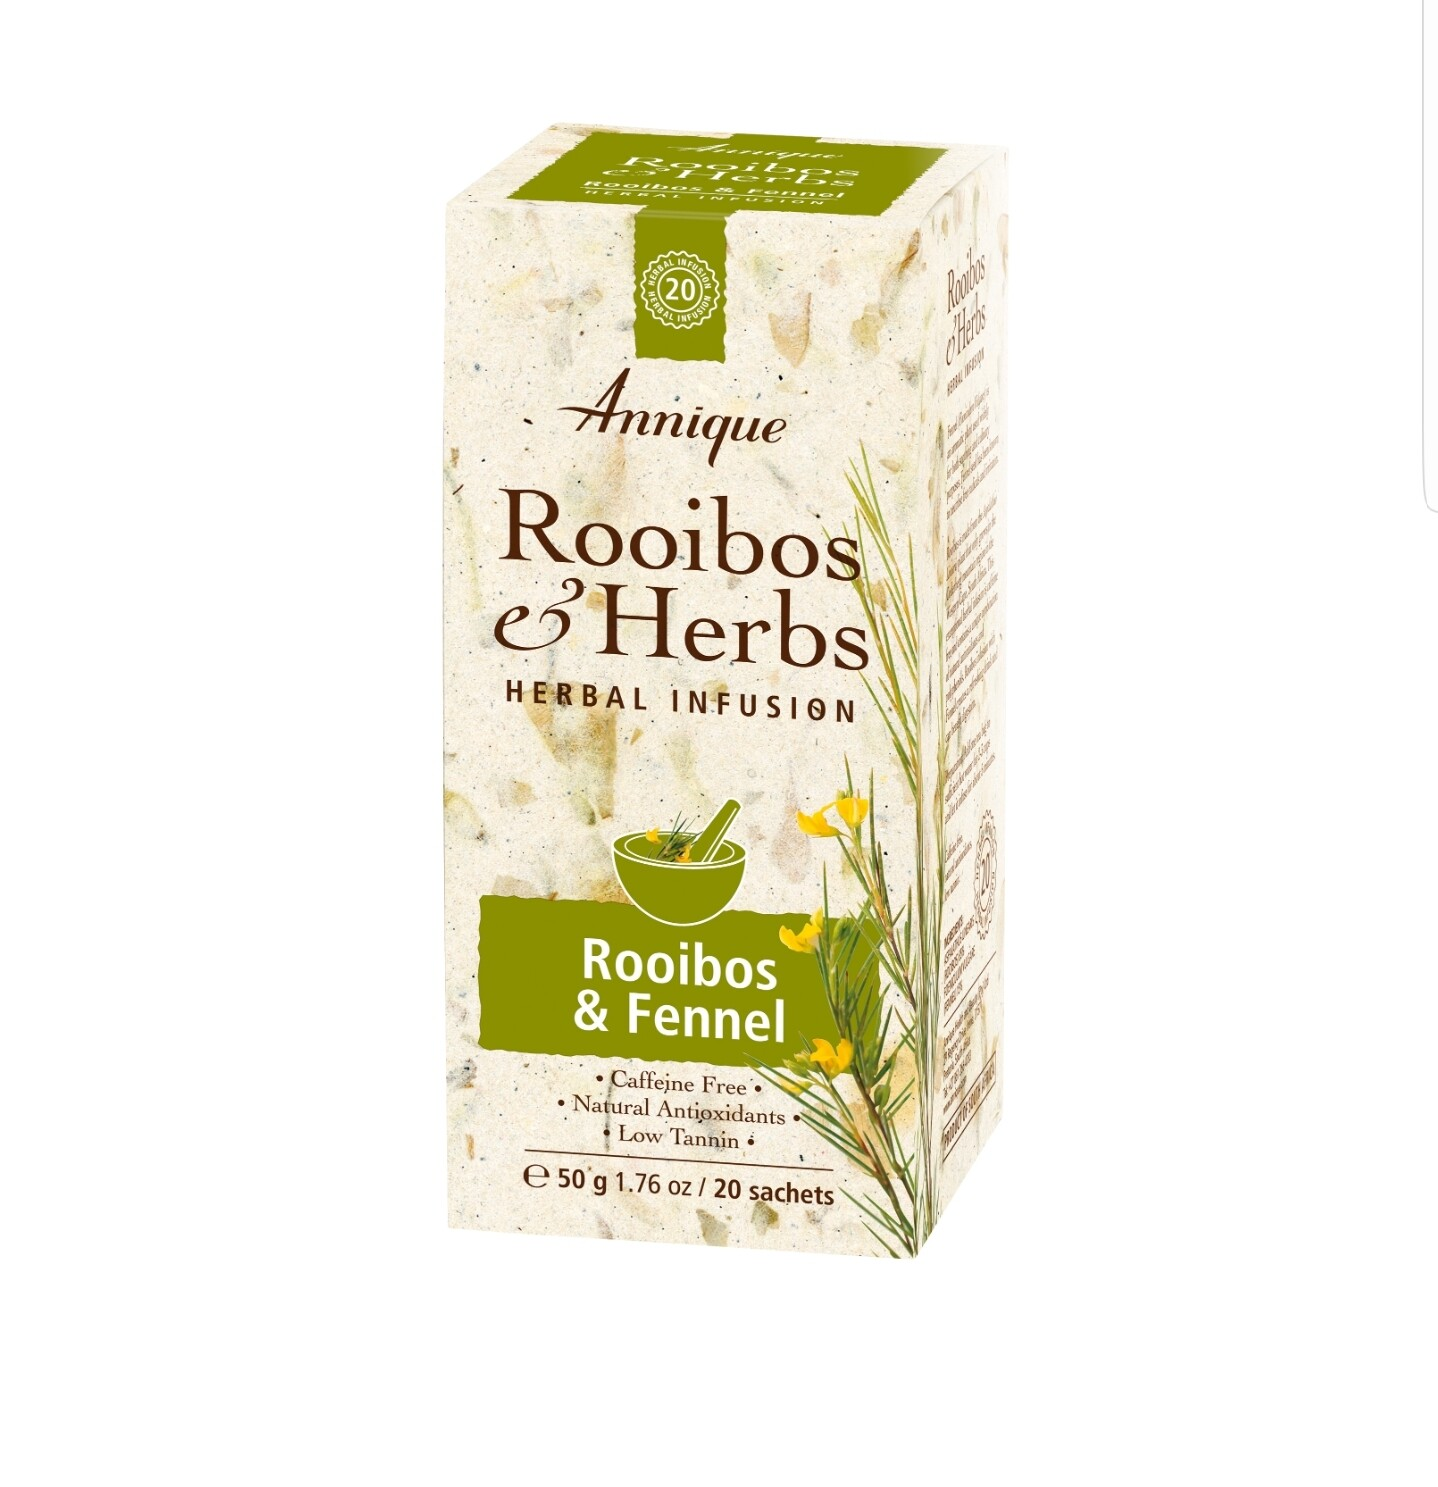 Annique Rooibos & Fennel Tea (Previously Metabolism Tea) 50g | 20 Bags